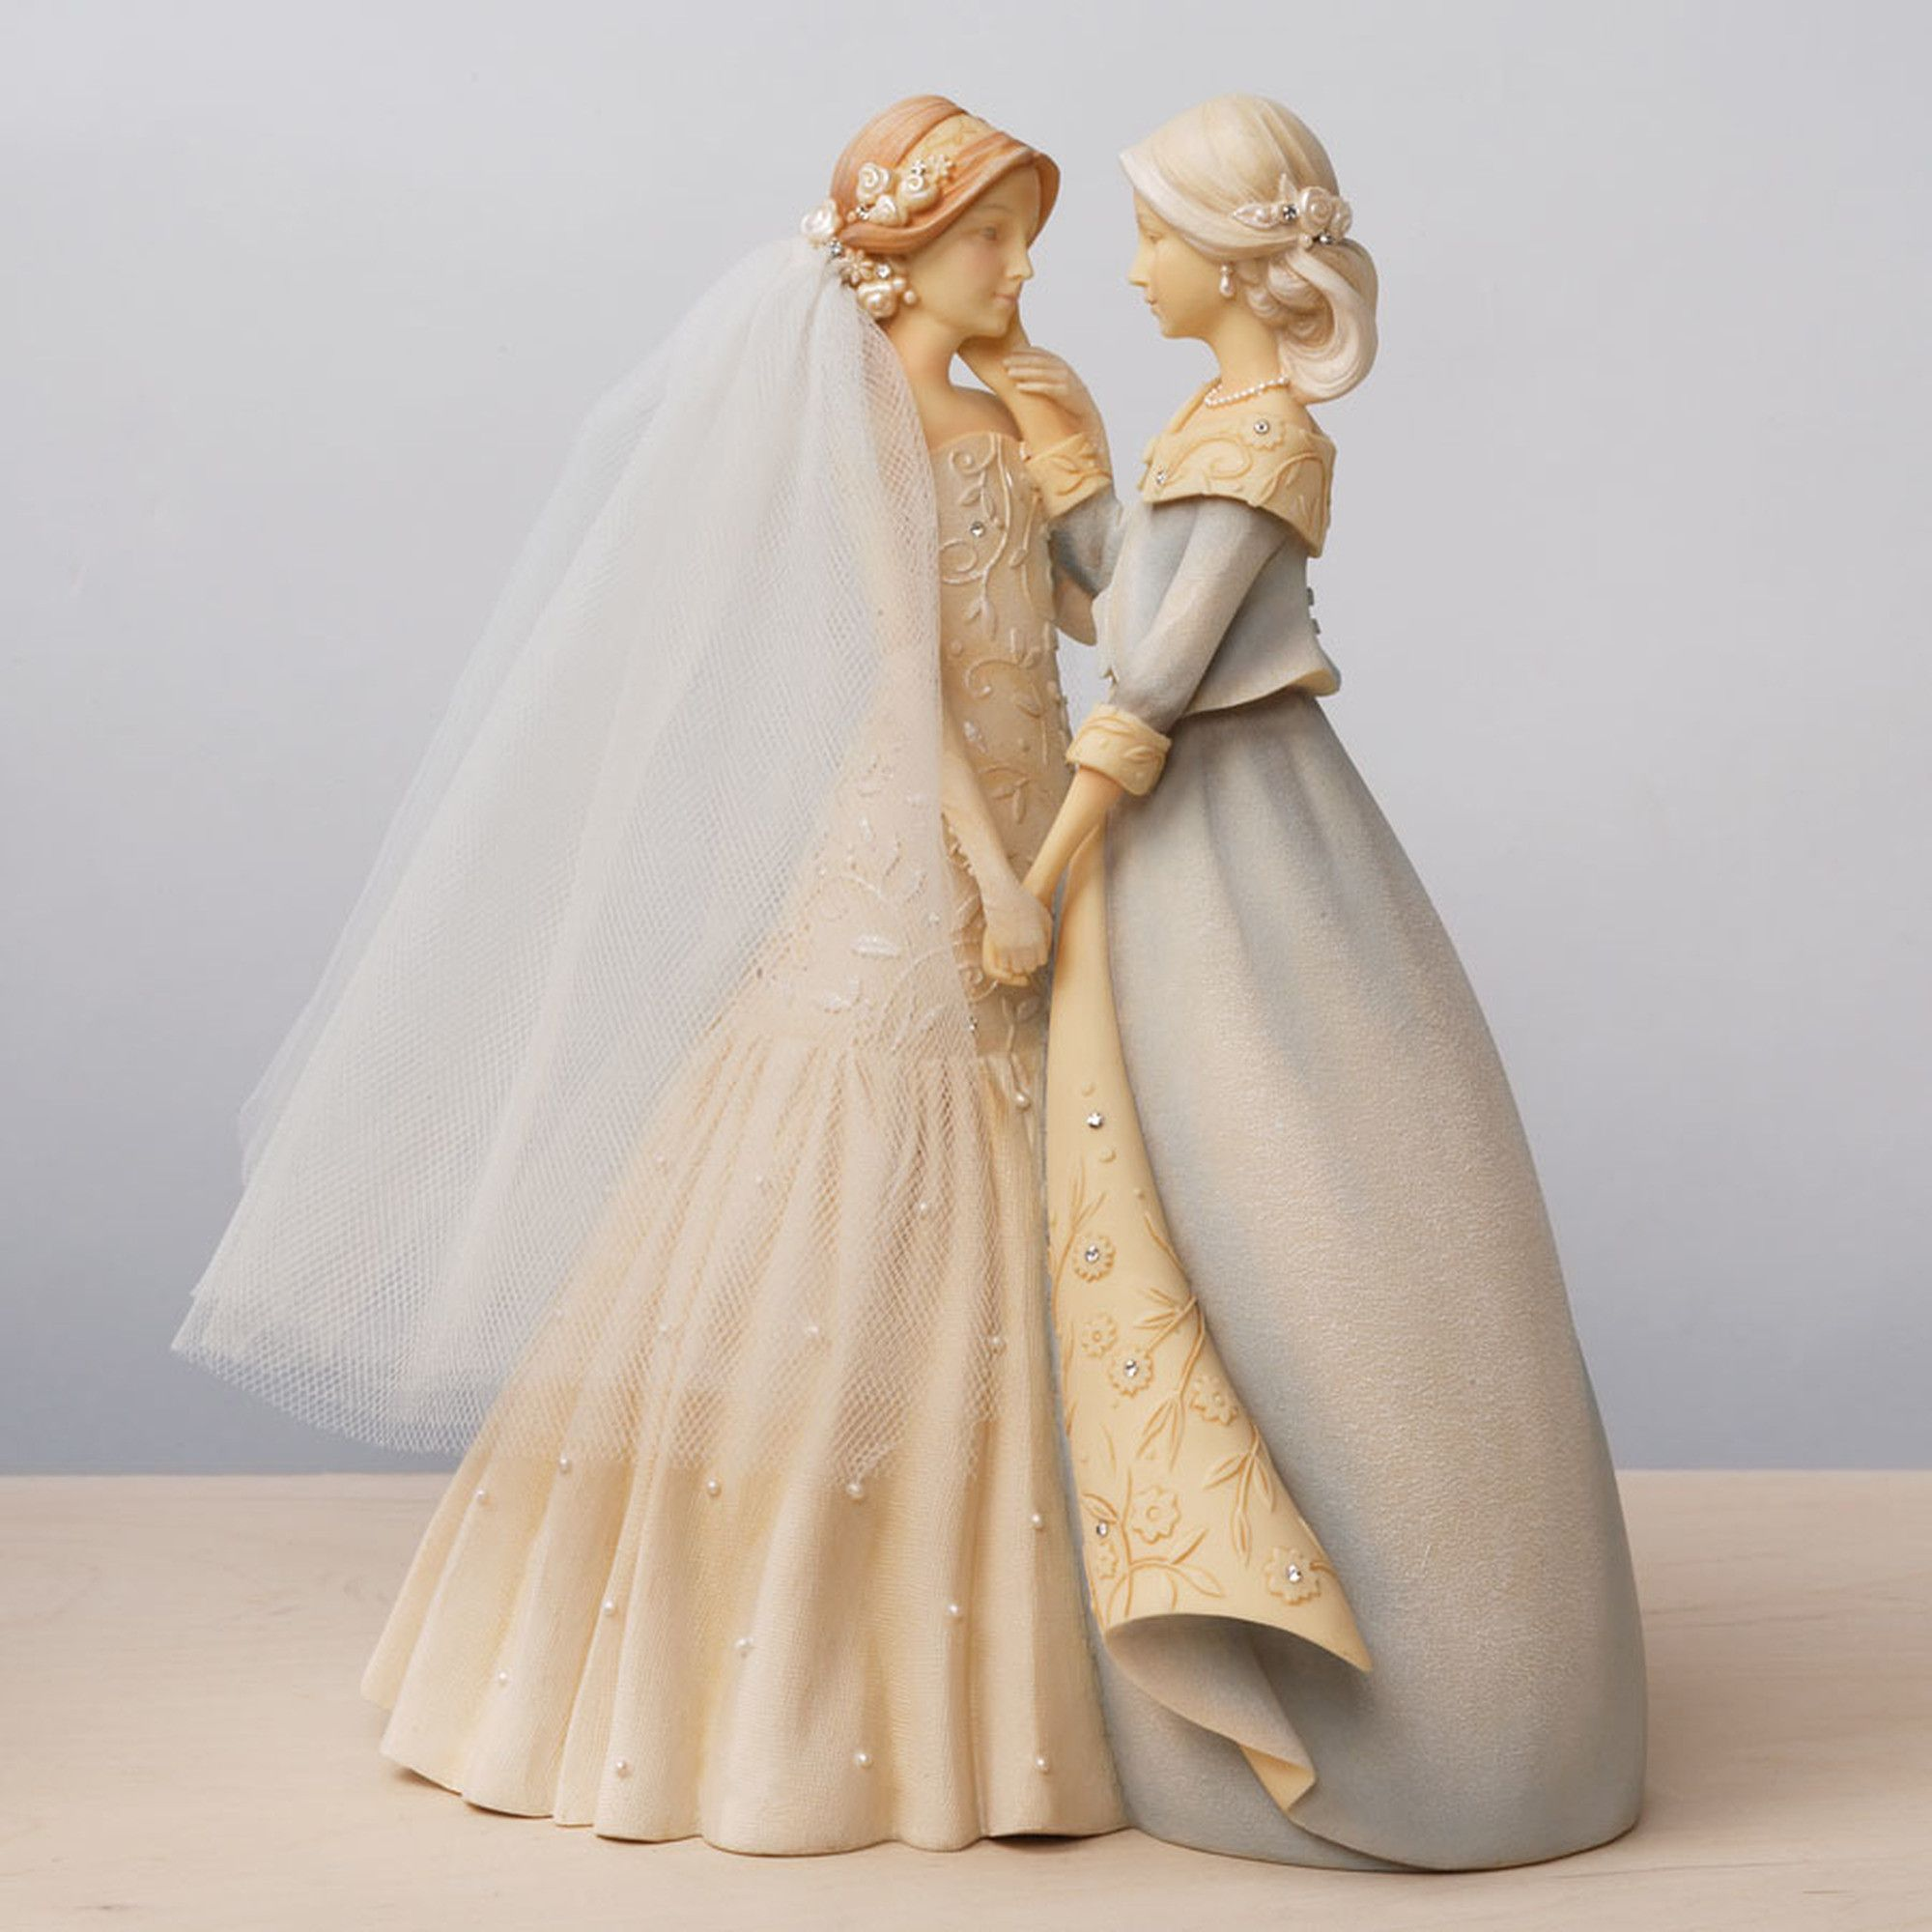 Enesco Foundations Mother And Bride Figurine 9 Inch